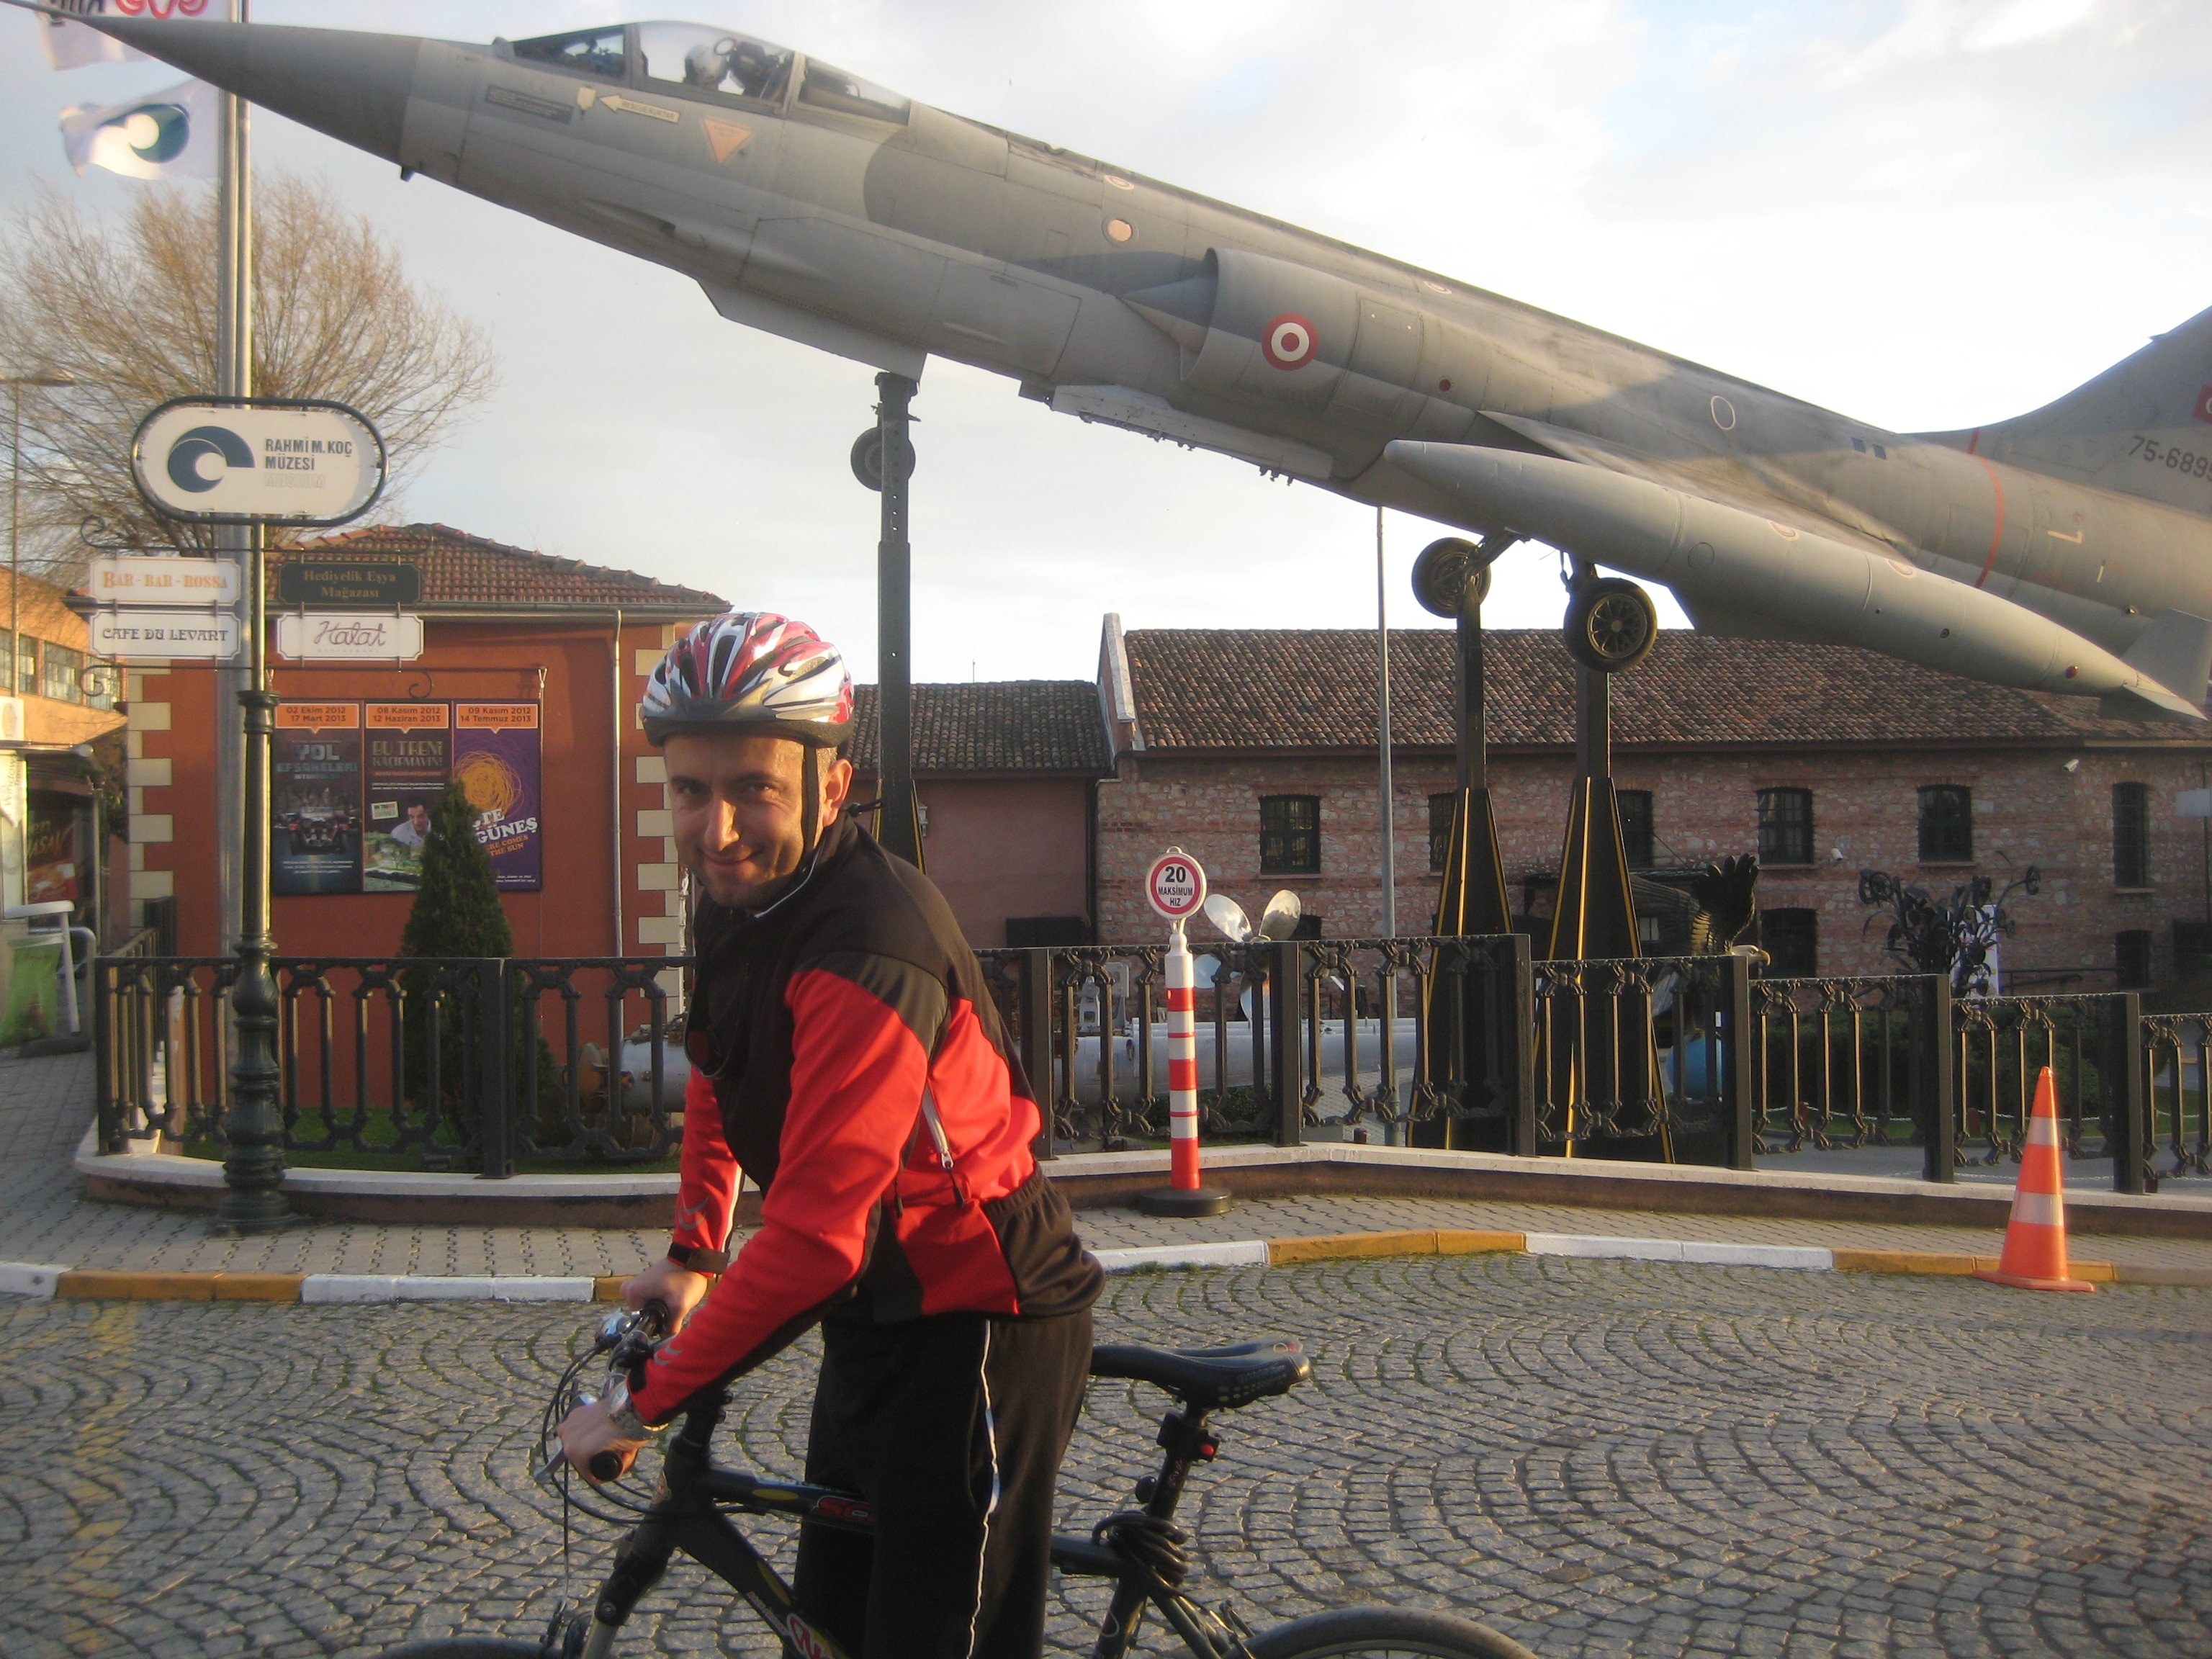 Jet at the entrance of Koc Museum